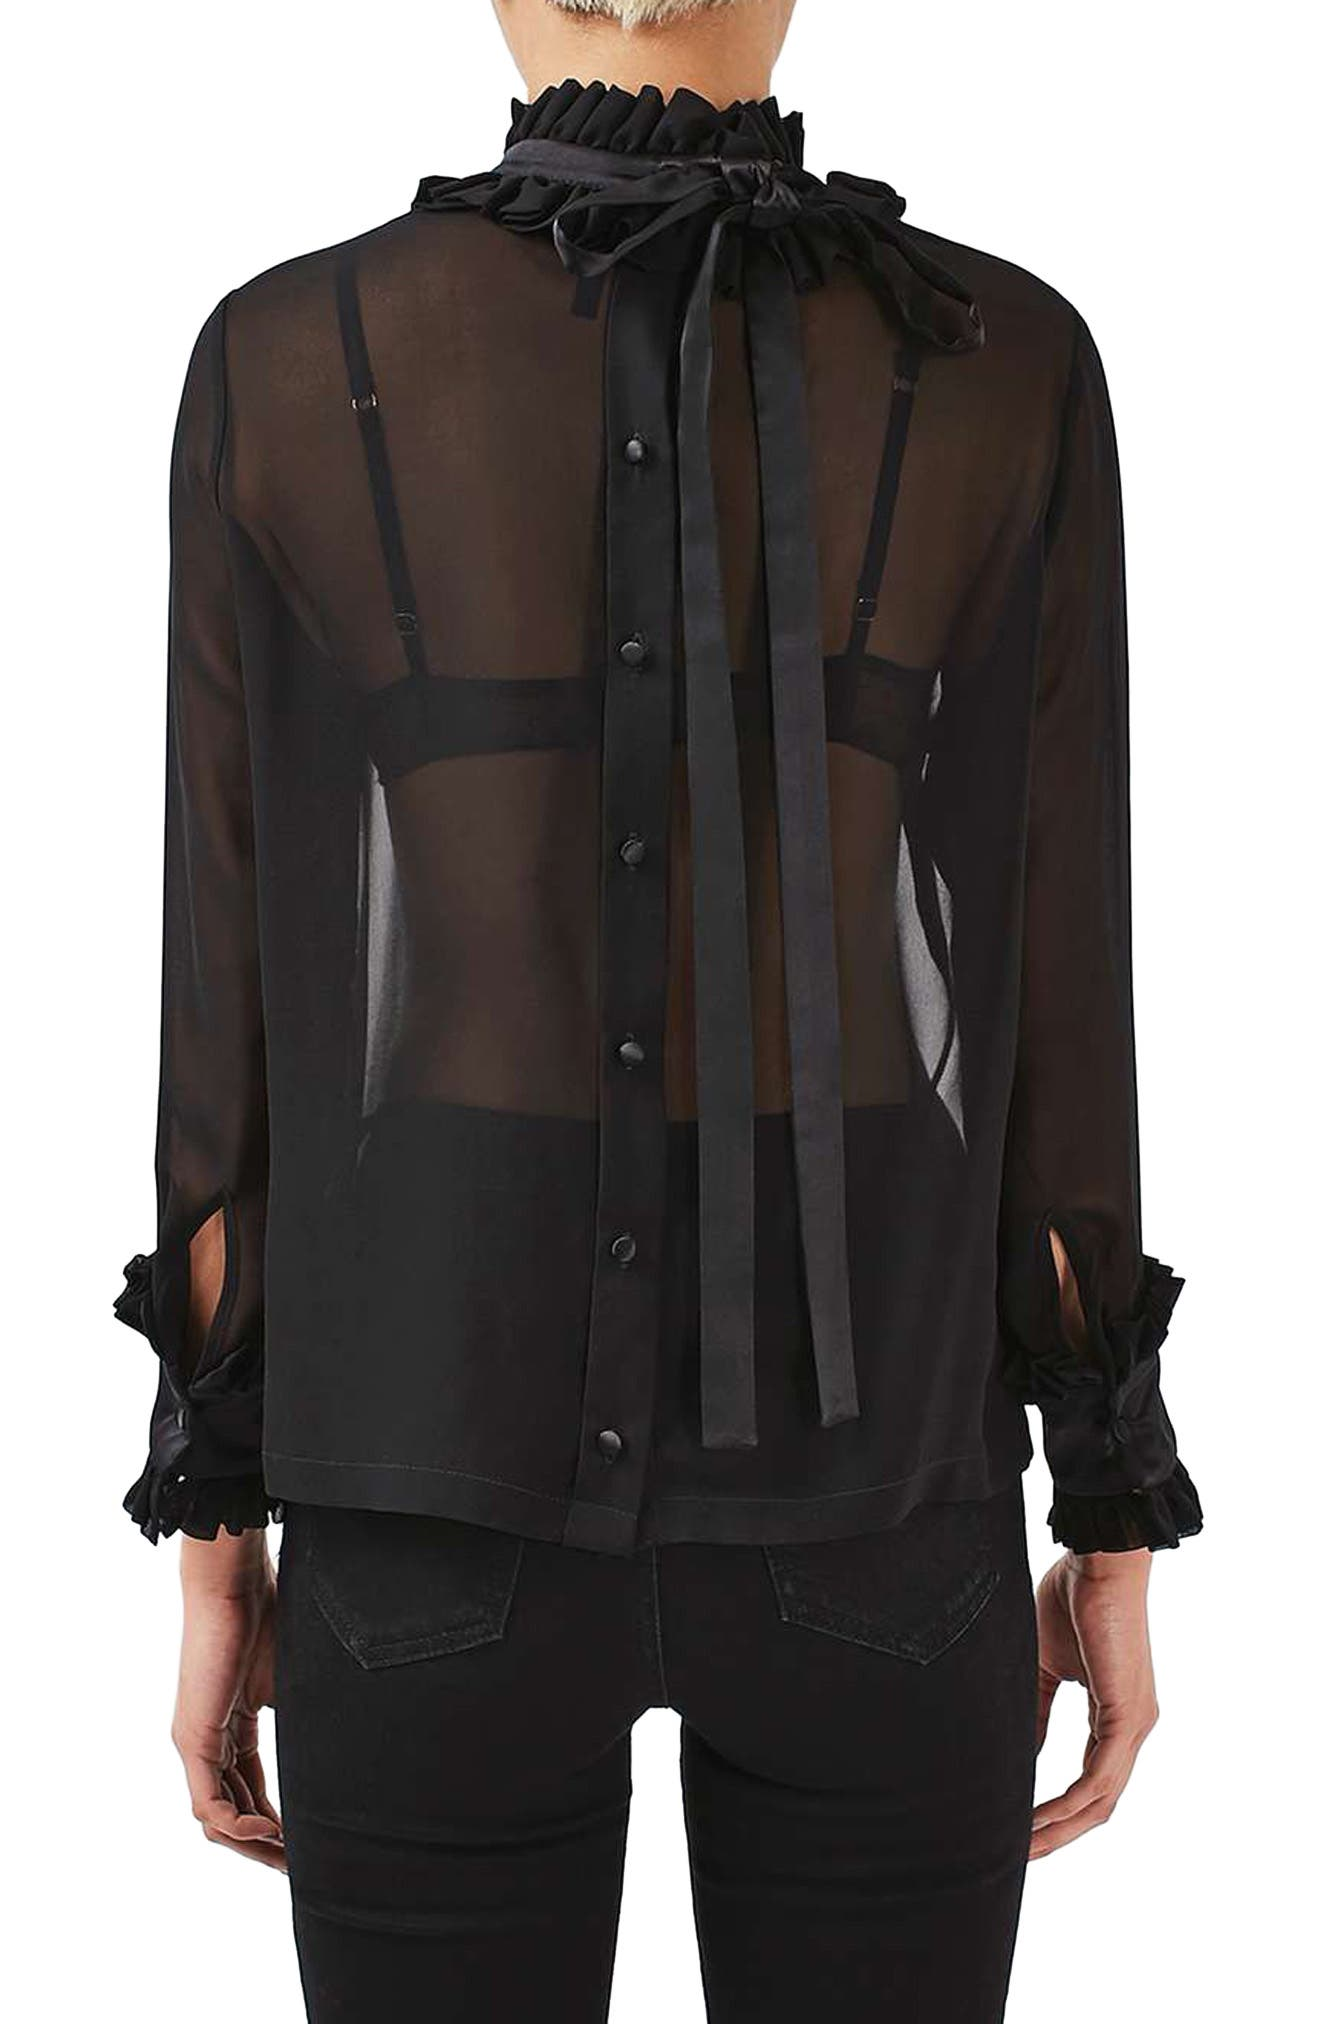 Hagen Sheer Silk Blouse,                             Alternate thumbnail 2, color,                             001